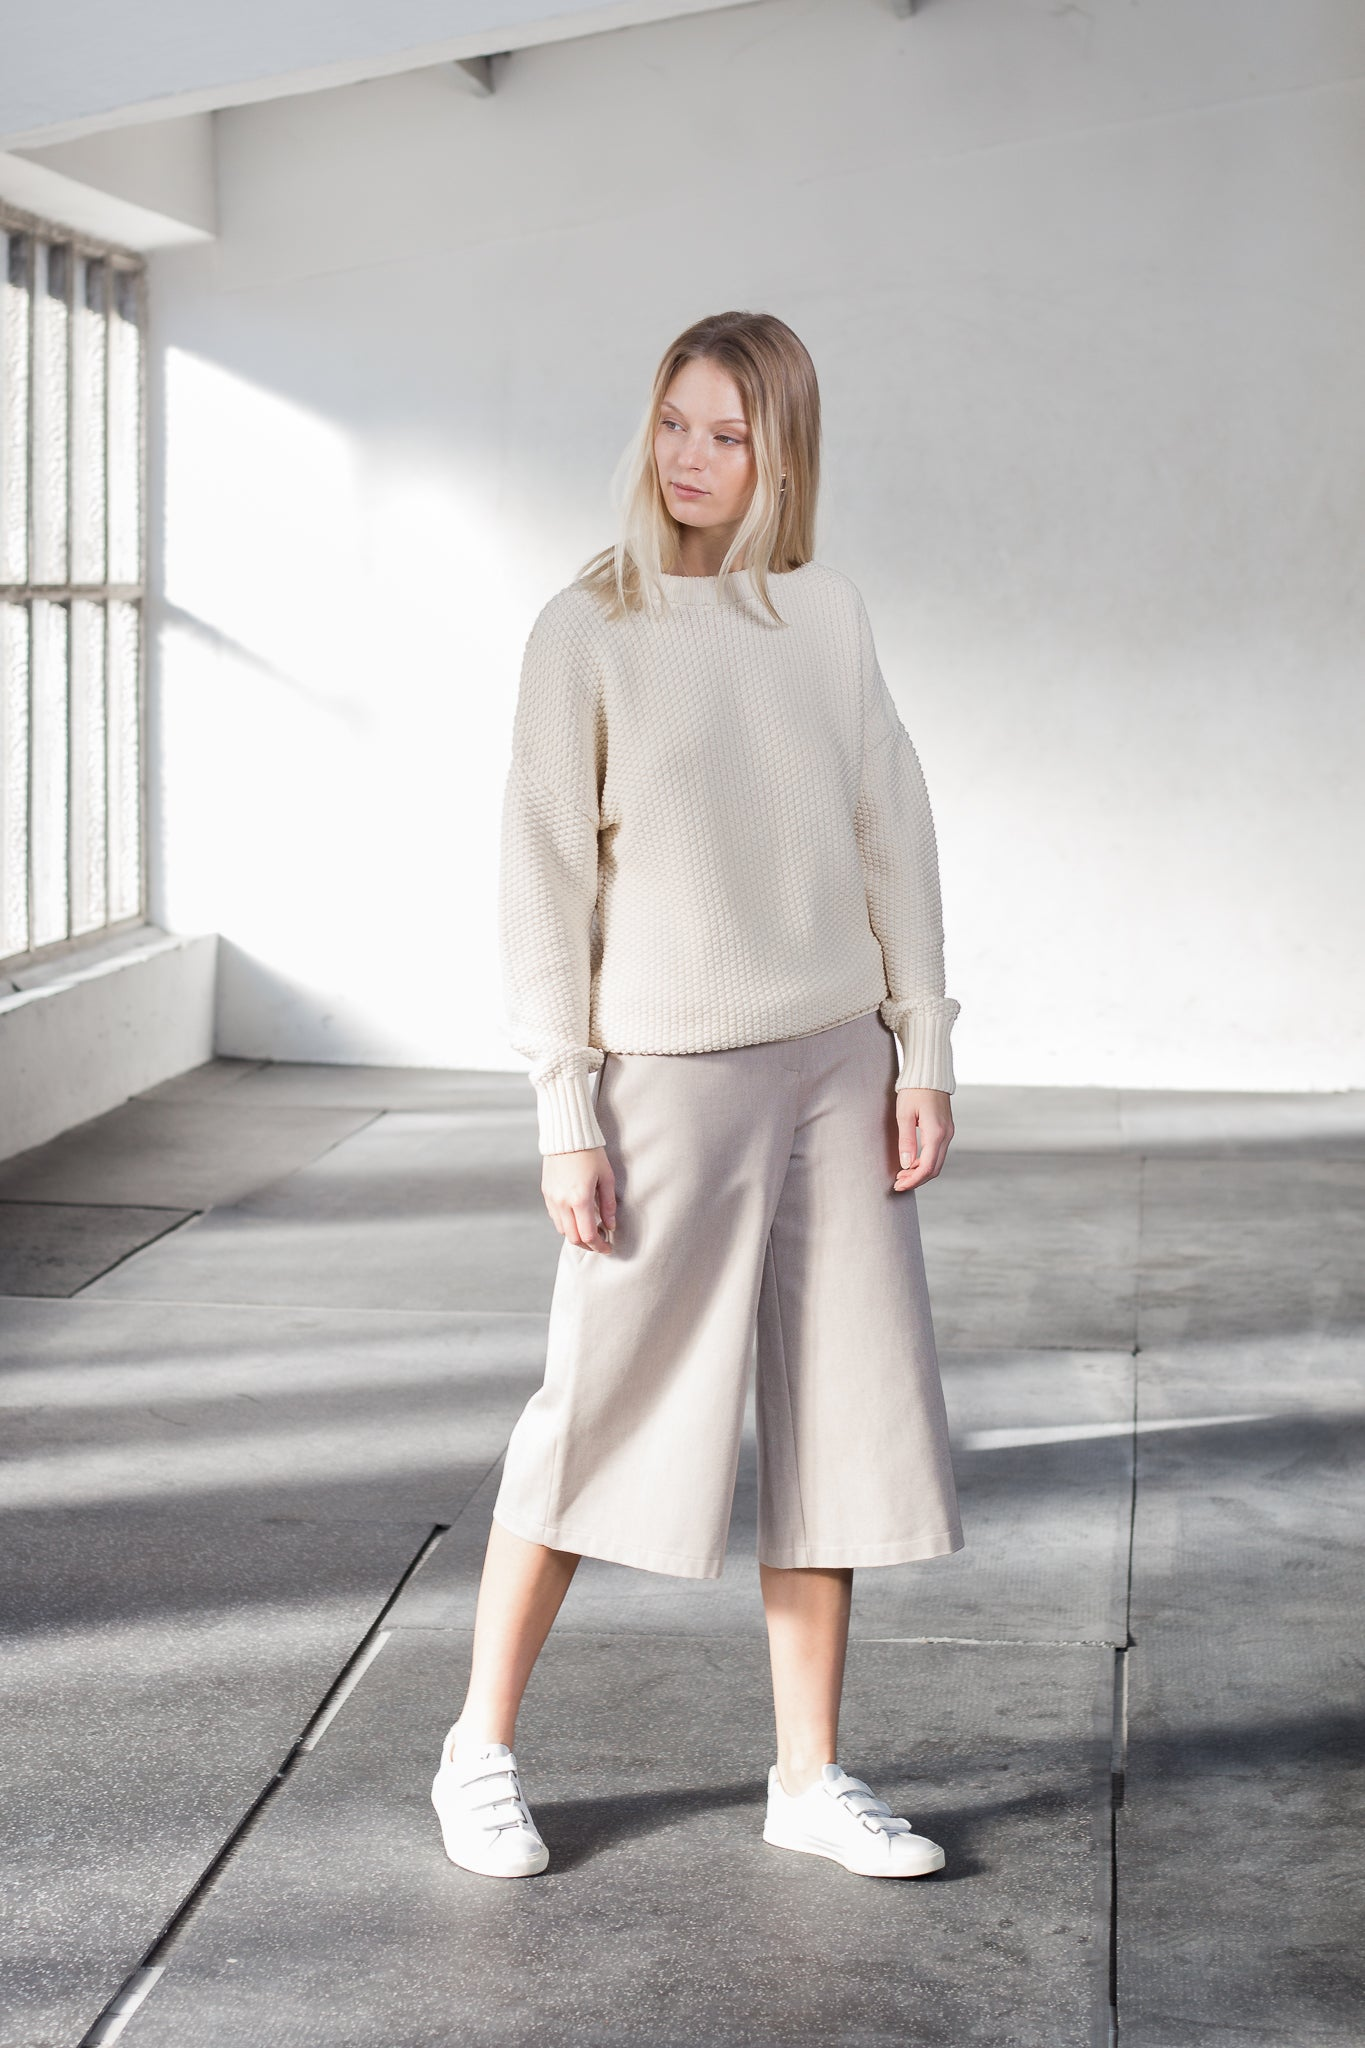 The model wears a natural sustainable organic cotton knitted rice cubes pullover and a skirt..